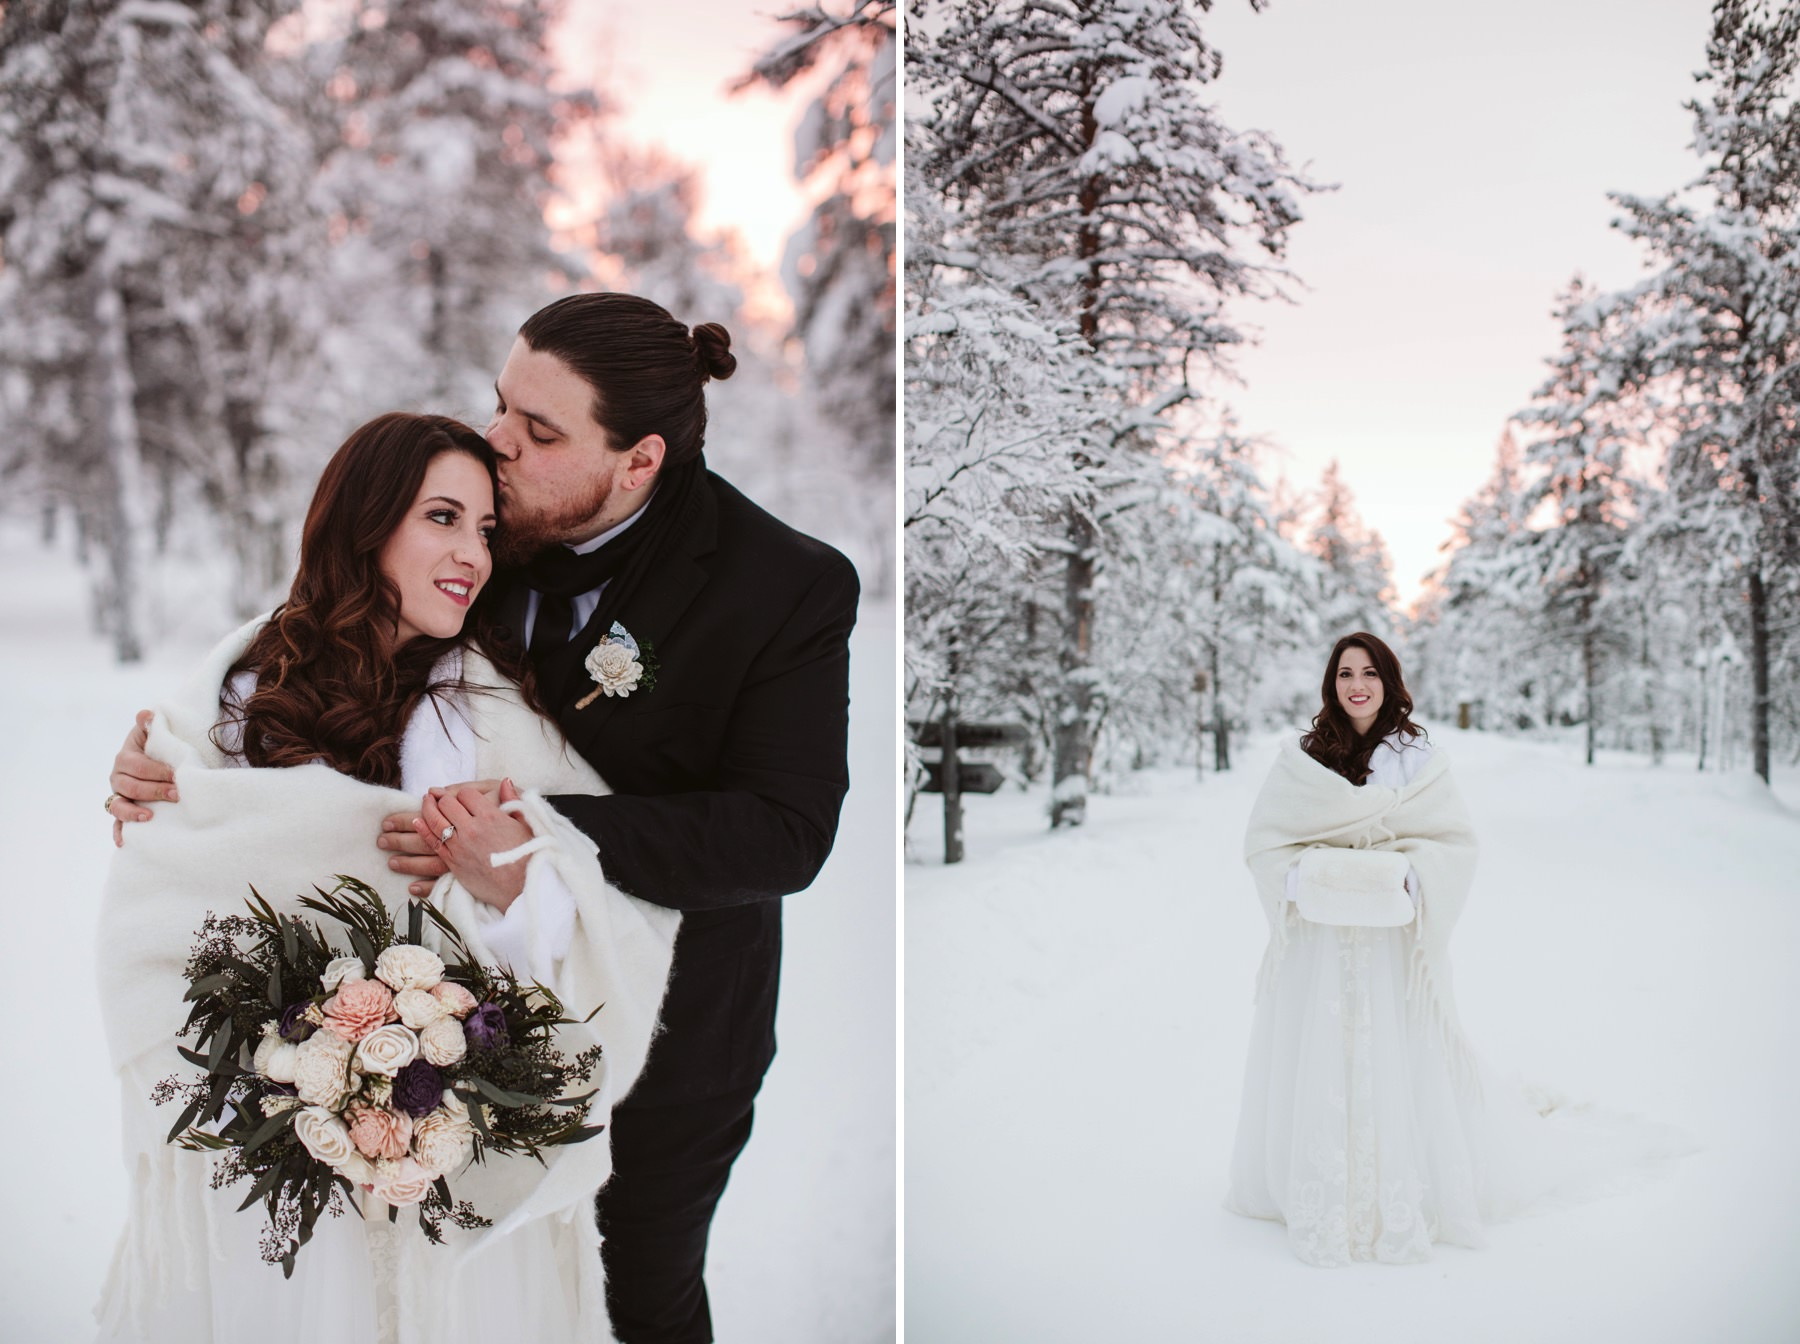 prewedding portraits in Lapland